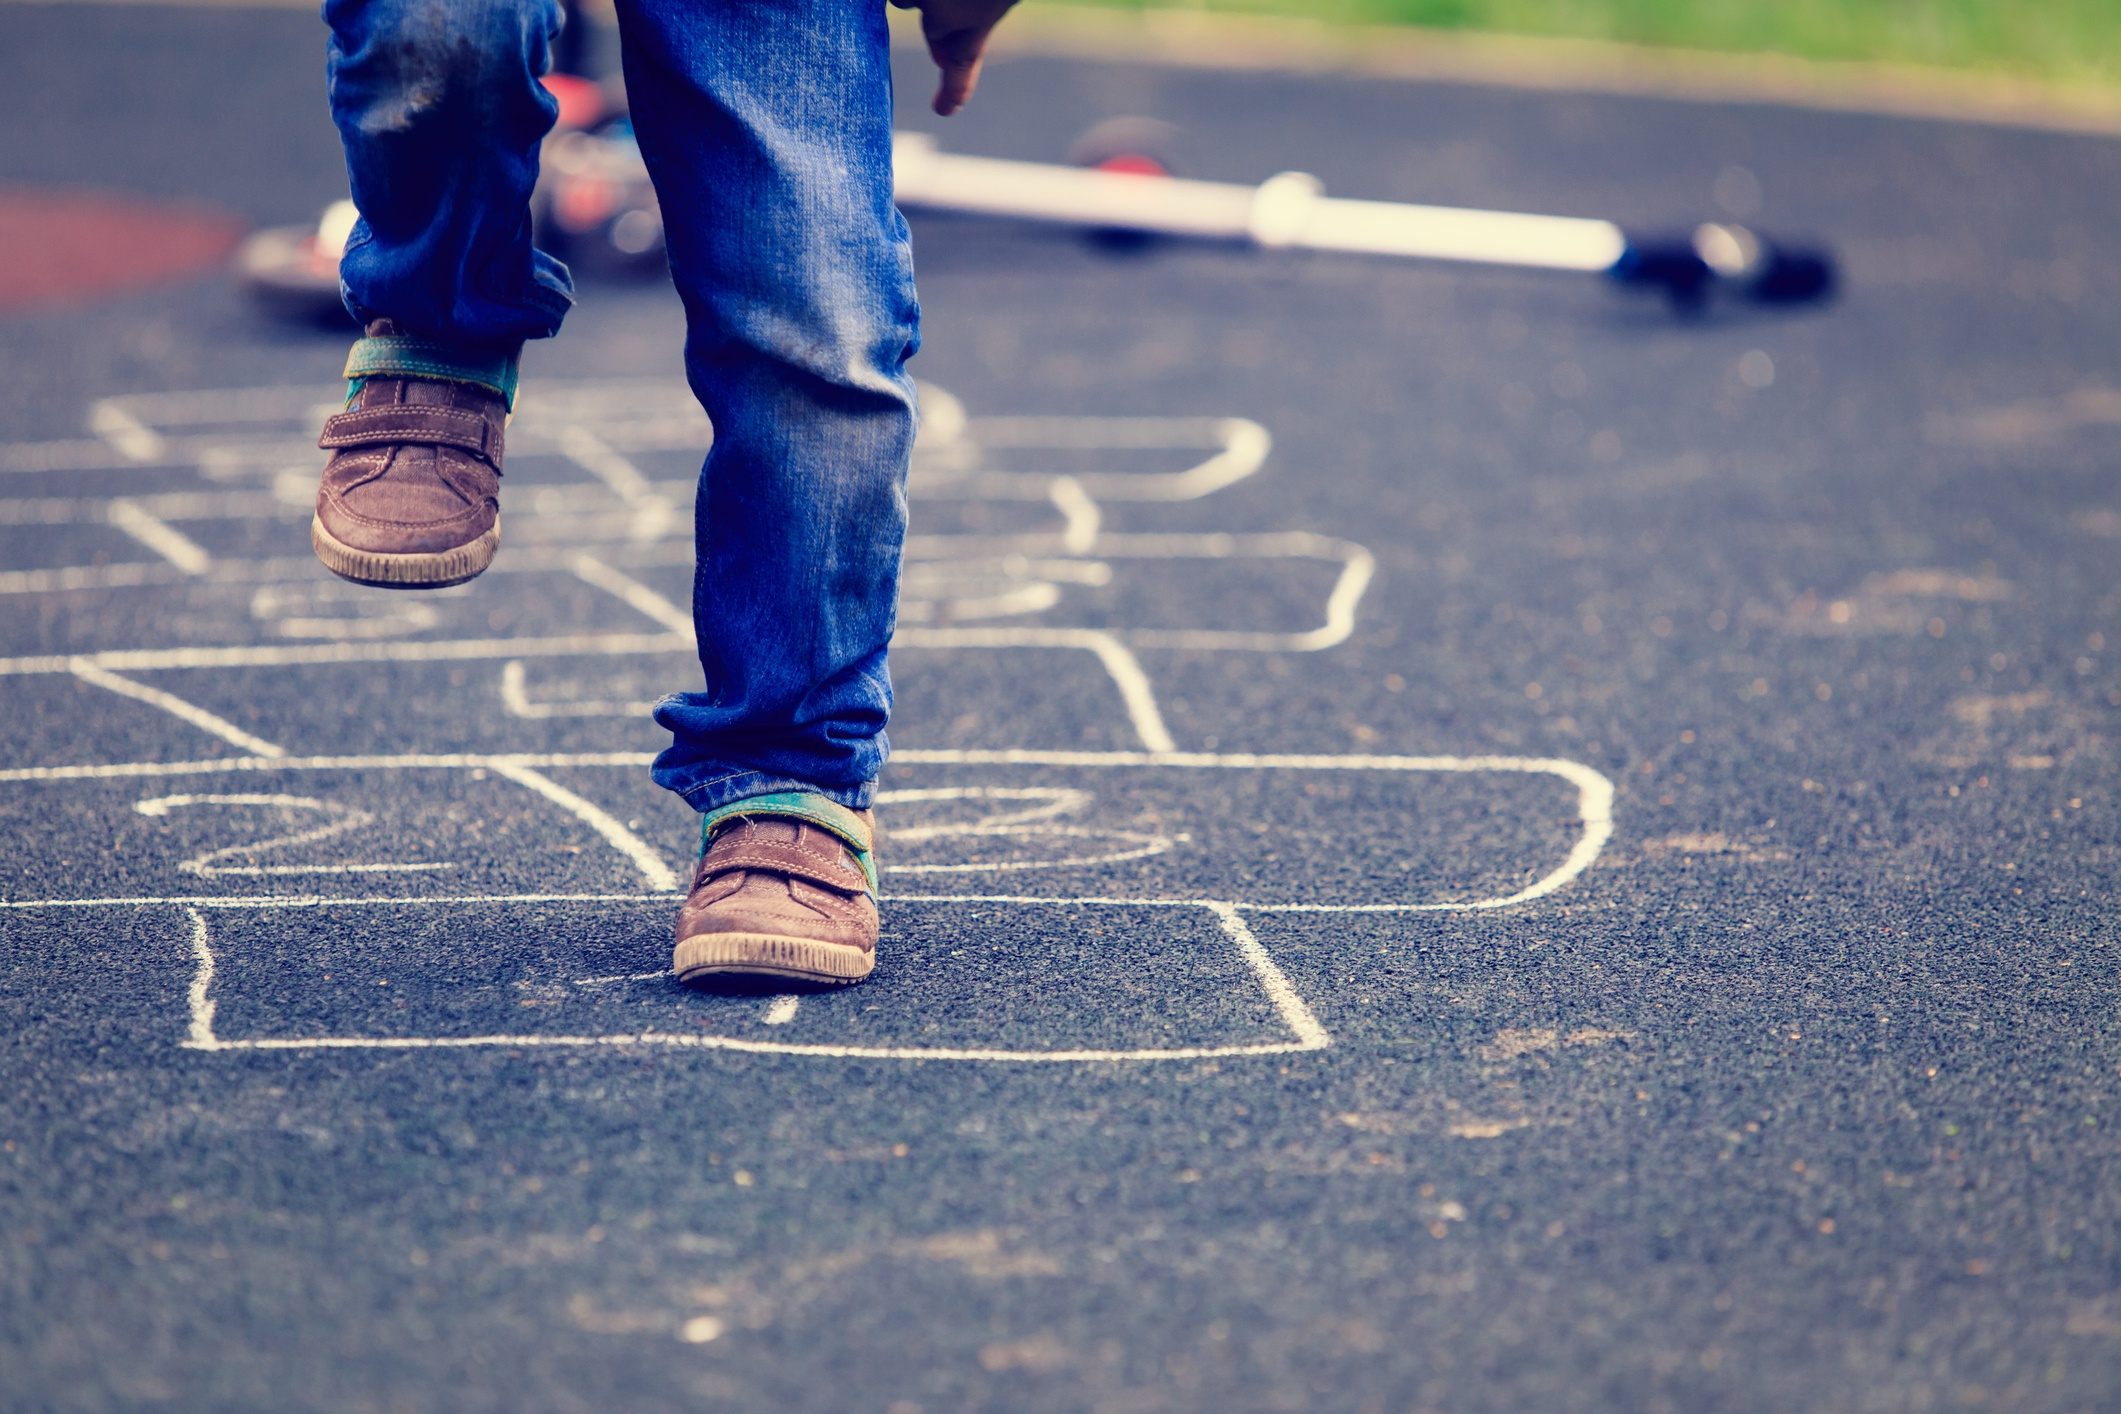 Who's Up for Hopscotch? Benefits of this Time-Tested Game